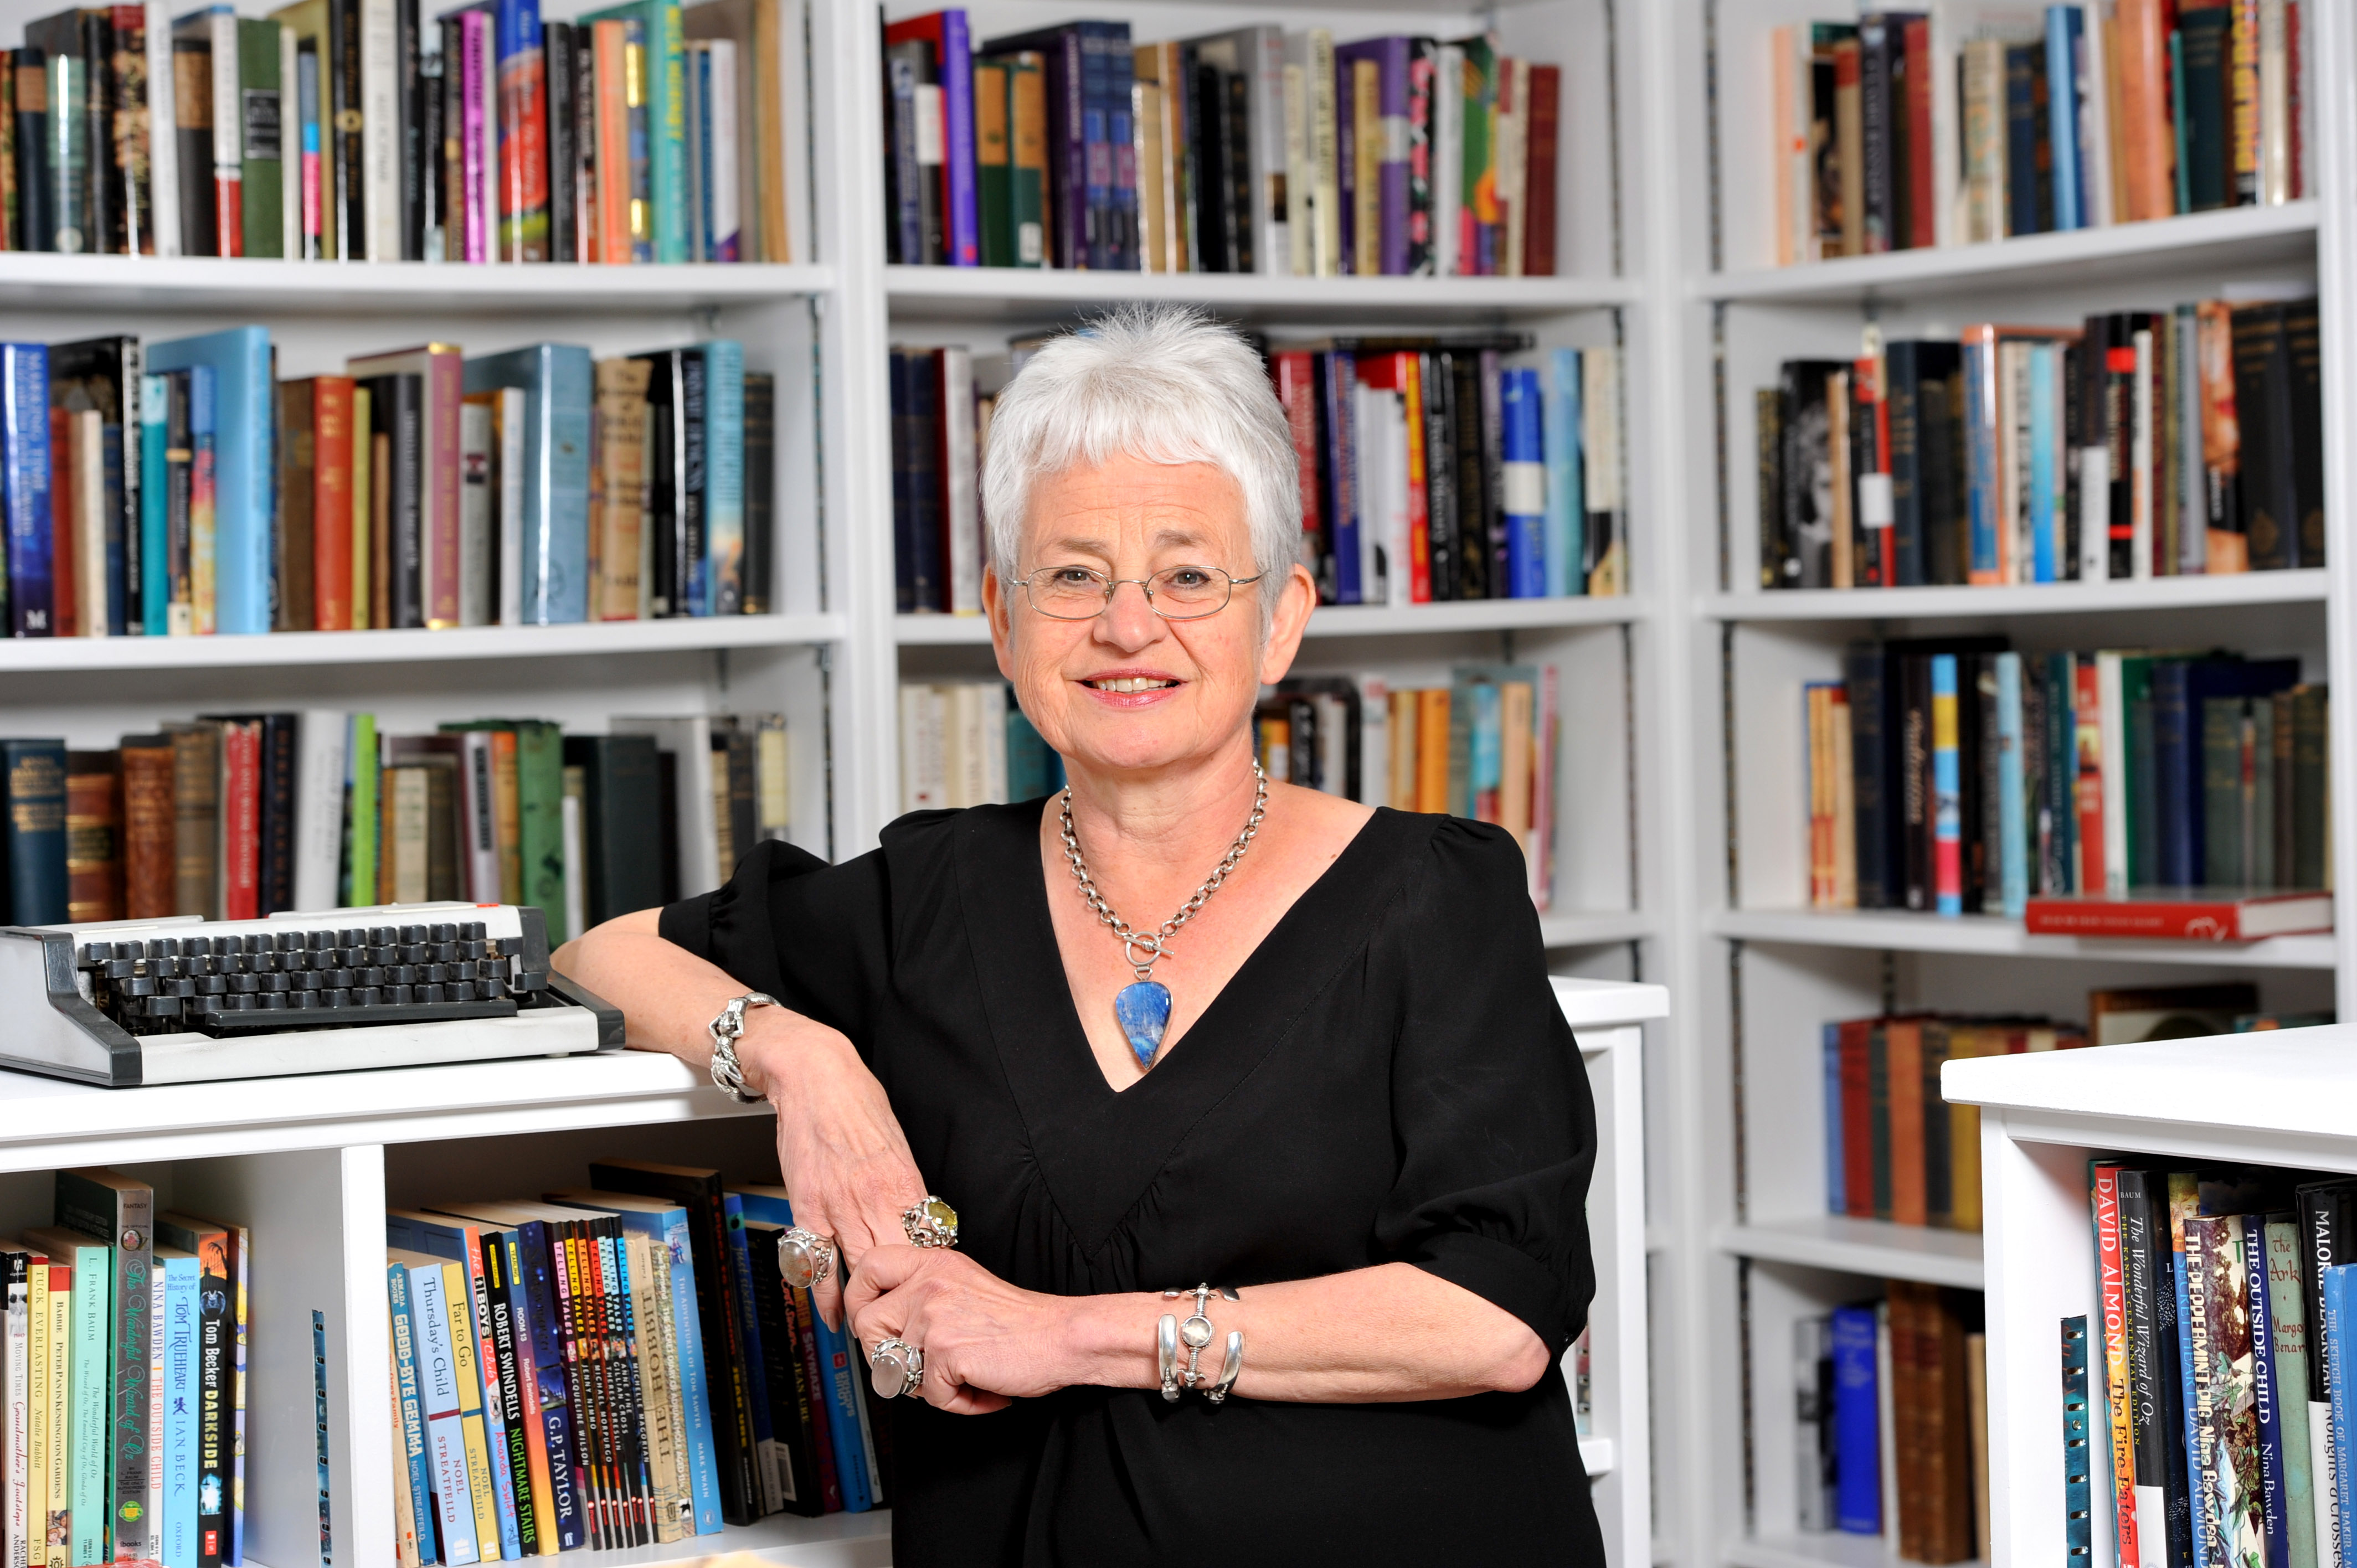 A photograph of Jacqueline Wilson standing next to a typewriter, surrounded by shelves of books